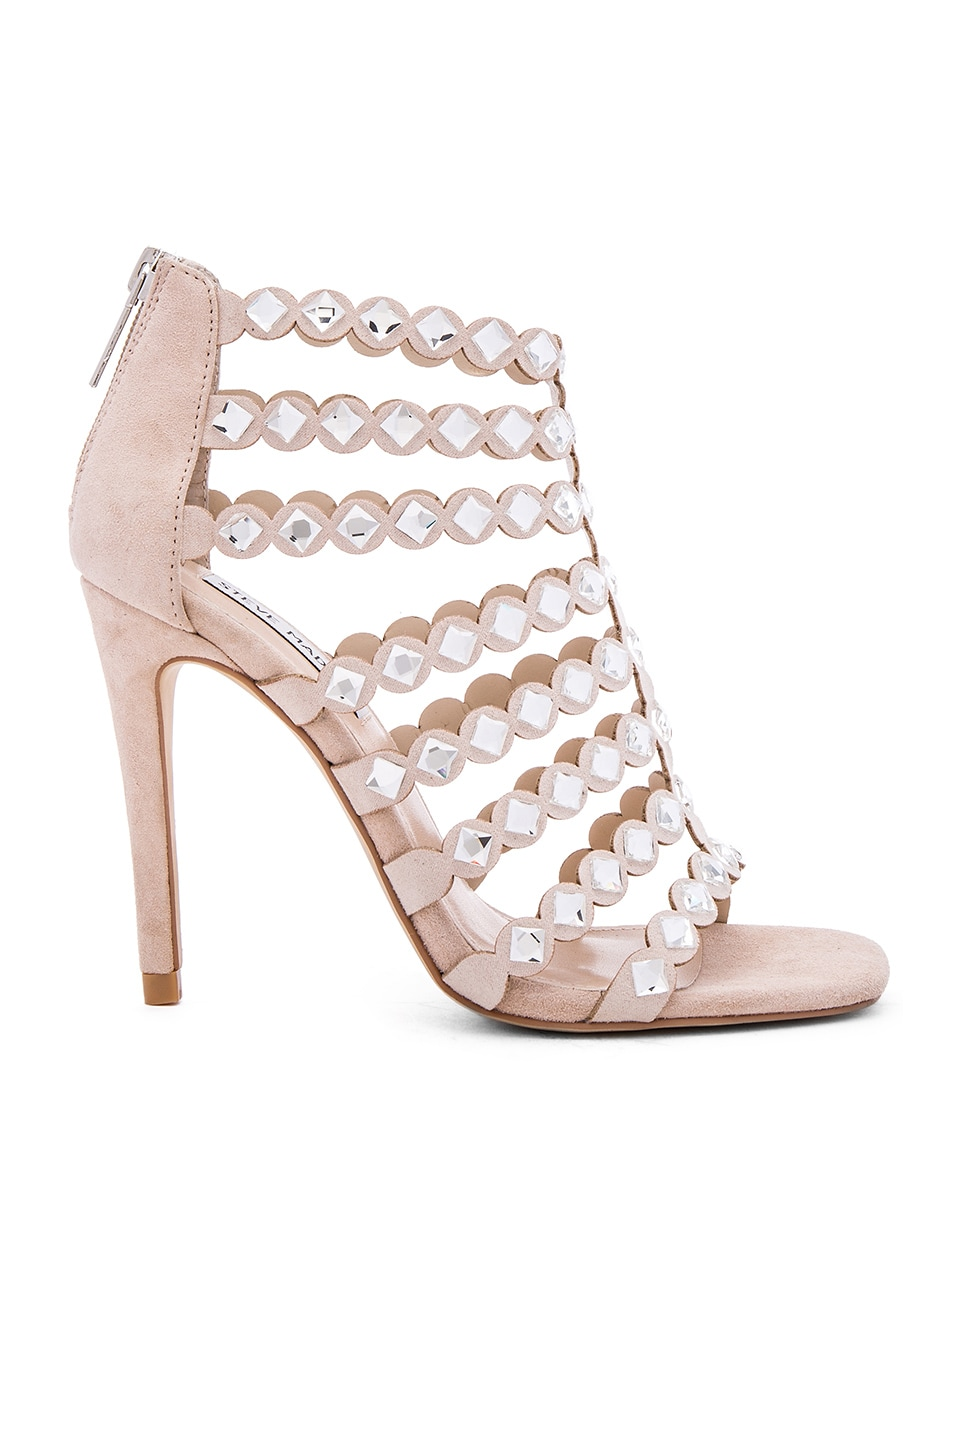 Steve Madden Shinning Heel in Blush Multi